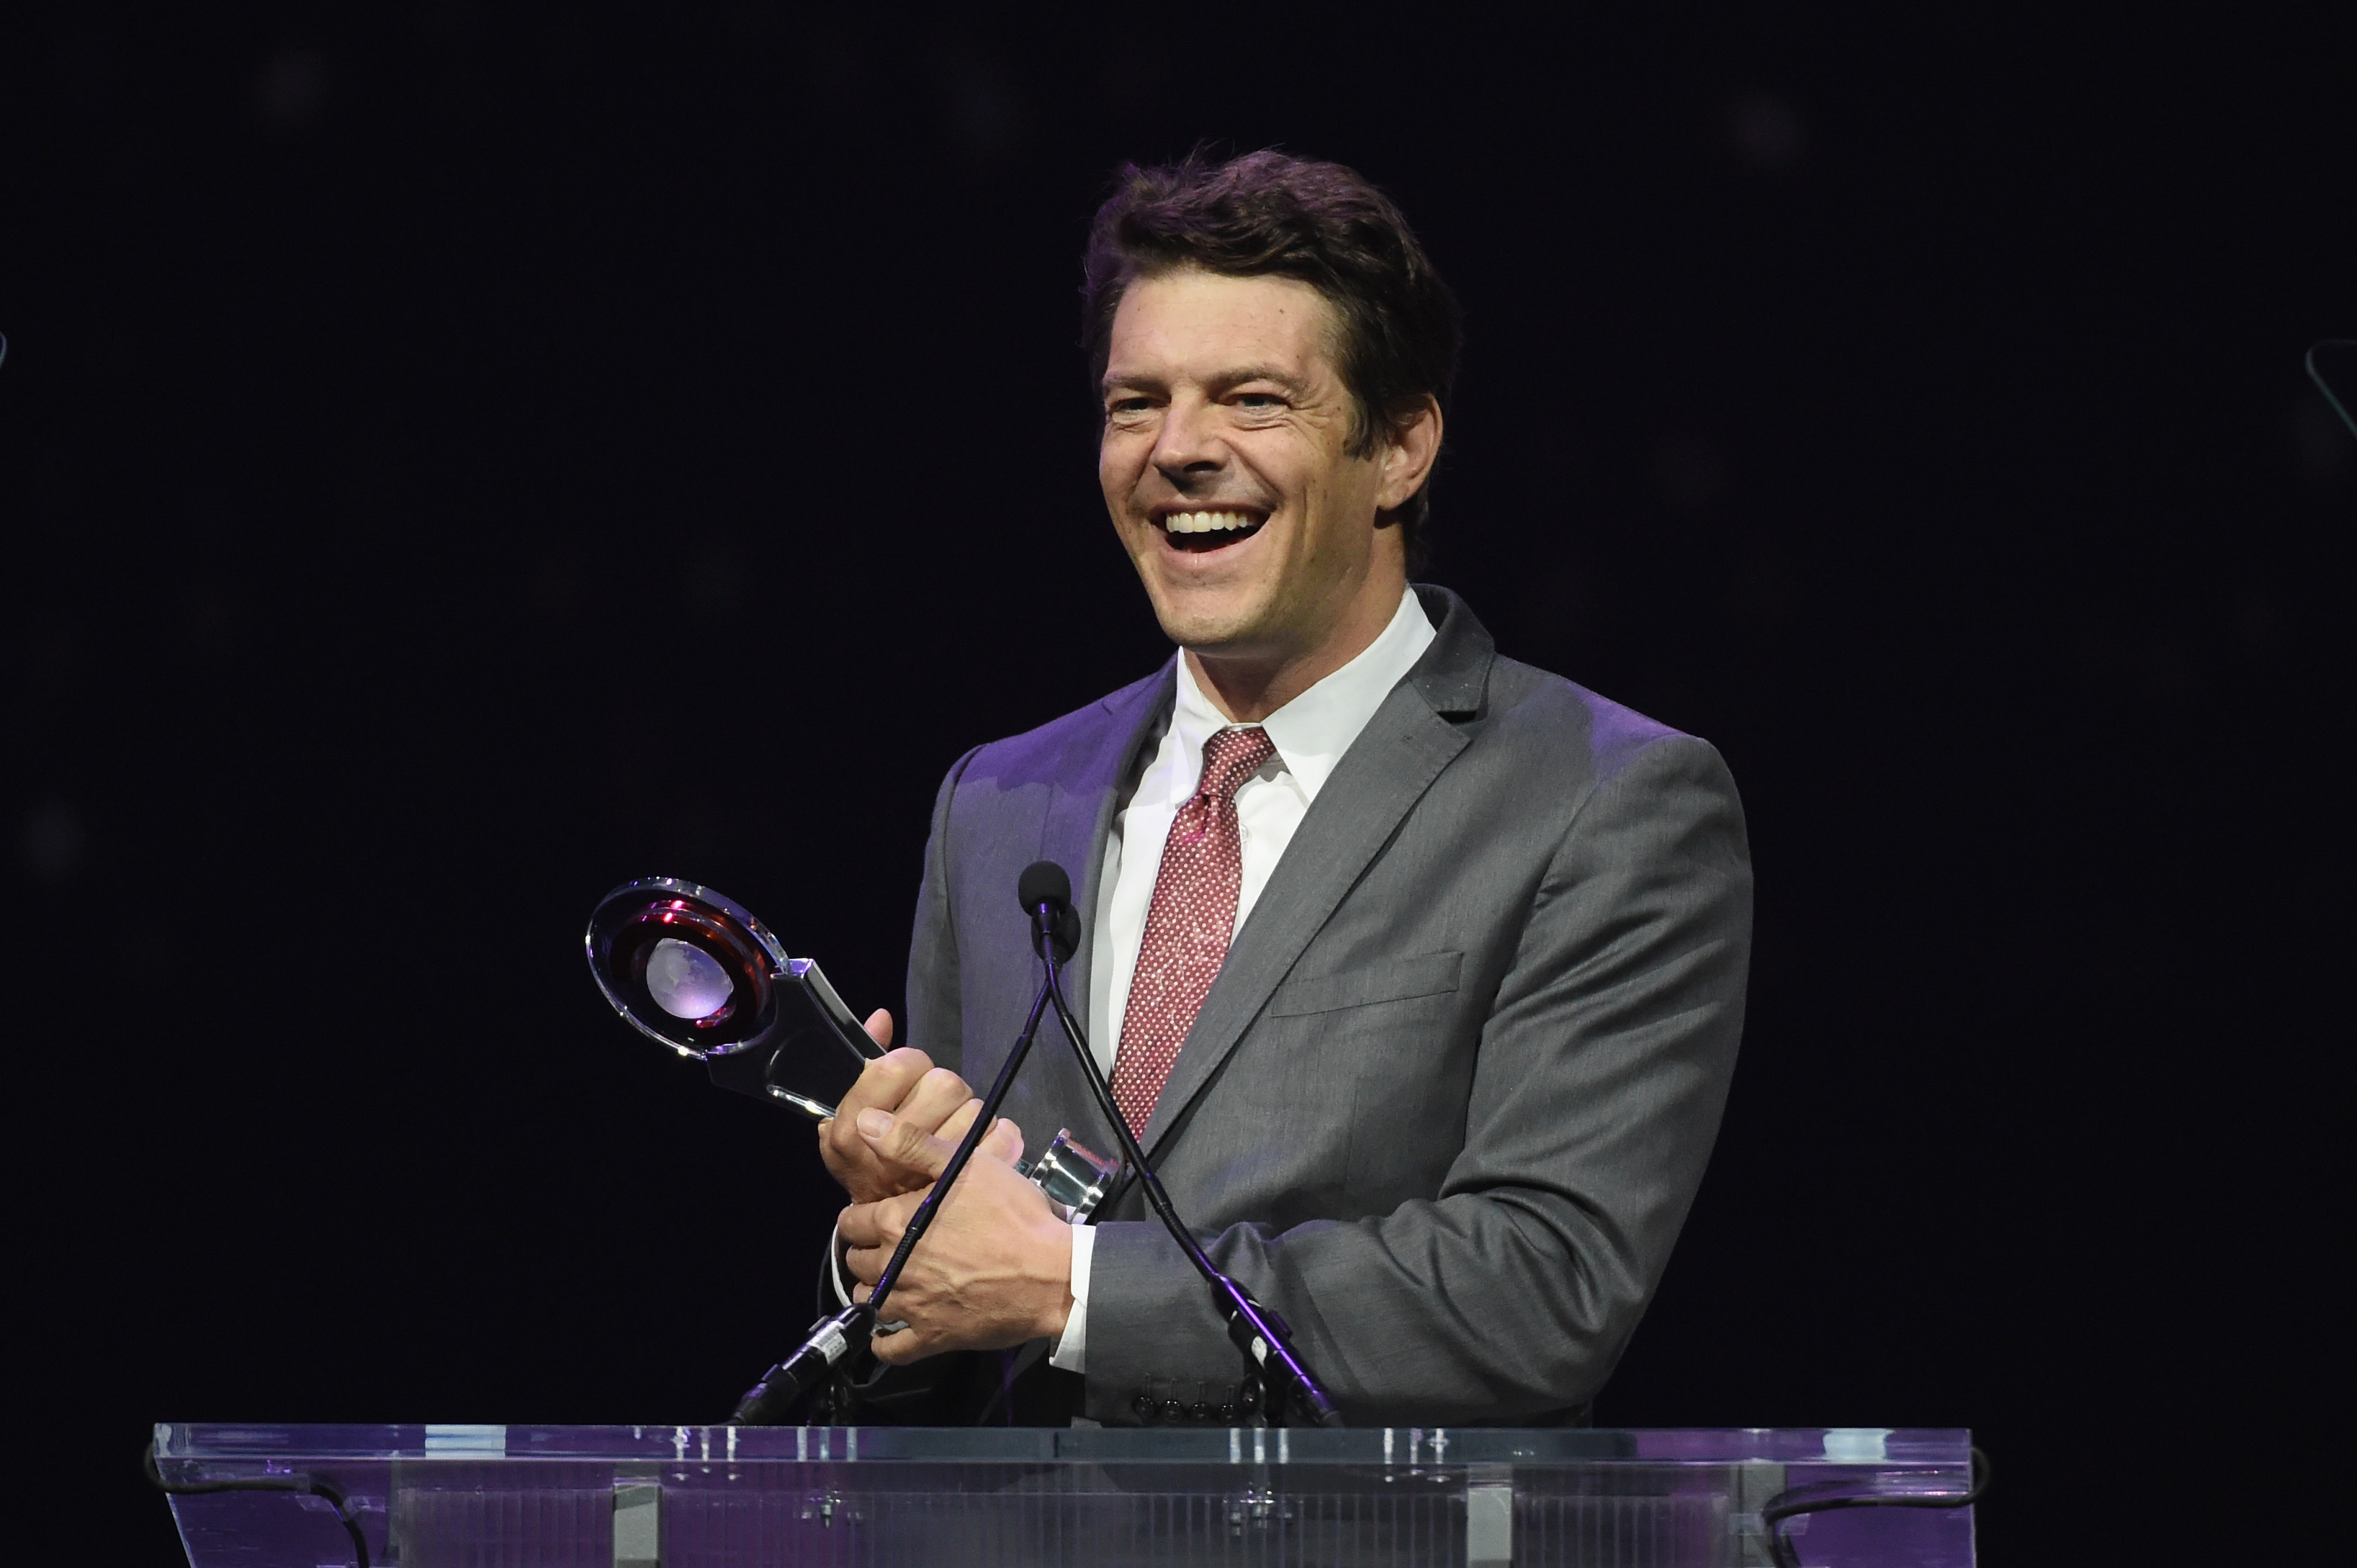 jason blumjason blum net worth, jason blum producer, jason blum, jason blum imdb, джейсон блум, jason blum wiki, jason blum interview, jason blum twitter, jason blum contact, jason blum wikipedia, jason blum instagram, jason blum biography, jason blum movies, jason blum book, jason blum wife, jason blum wedding, jason blum blumhouse, jason blum music, jason blum attorney, jason blum blumhouse productions